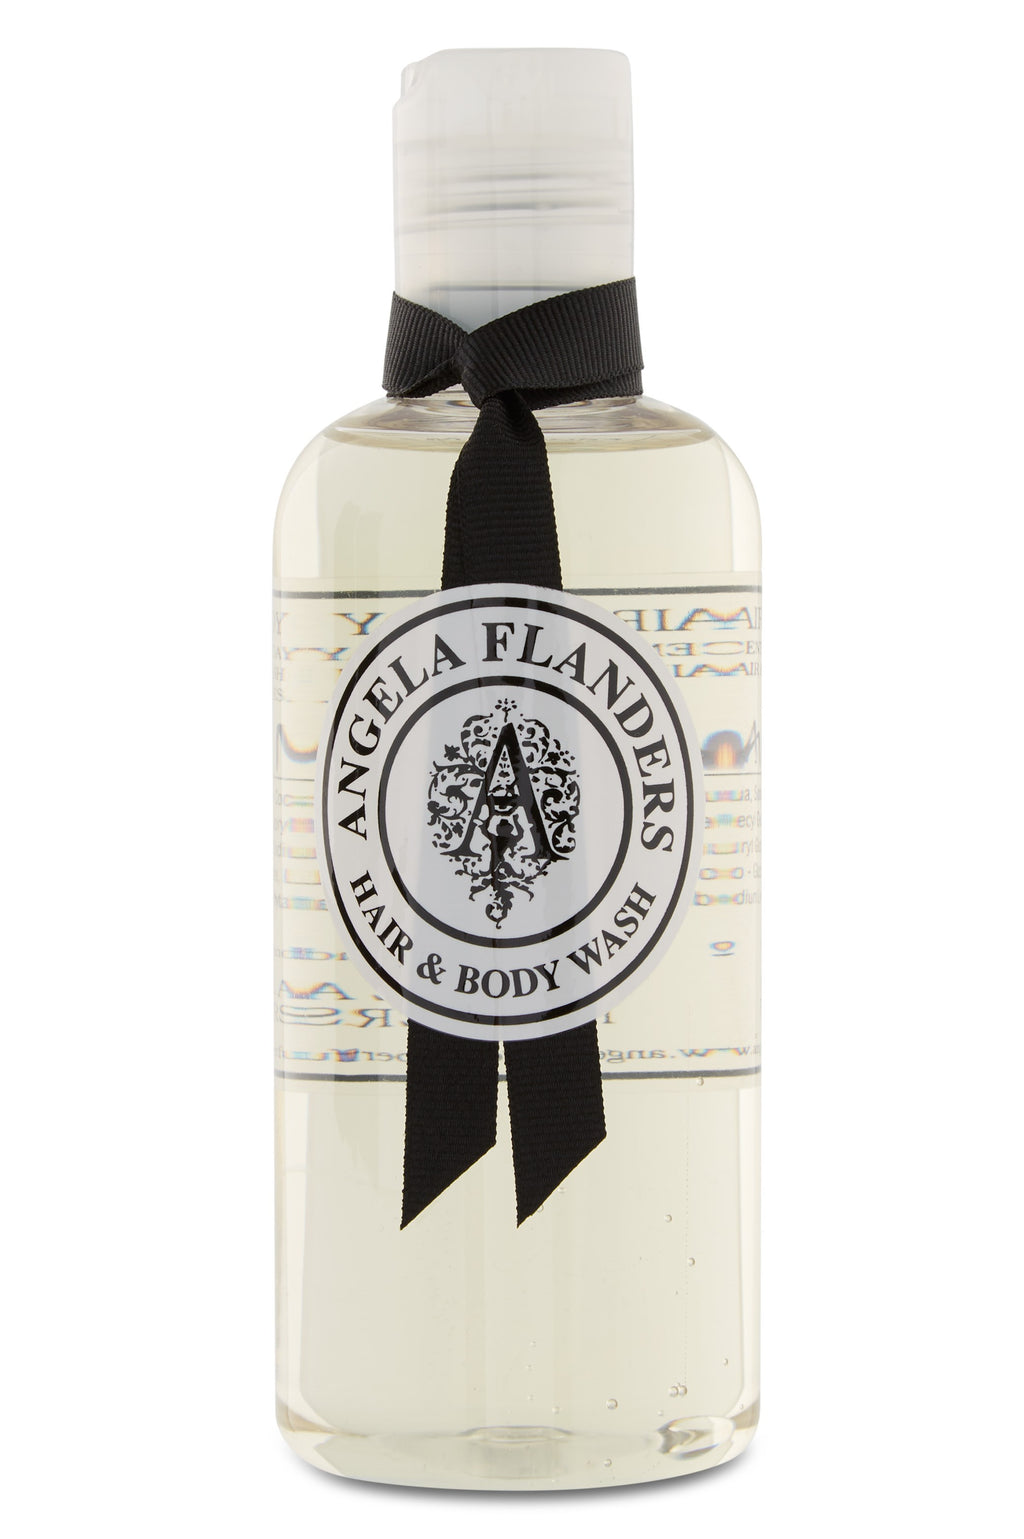 Angela Flanders Artillery No 7 Lavender & Amber Hair & Body Wash